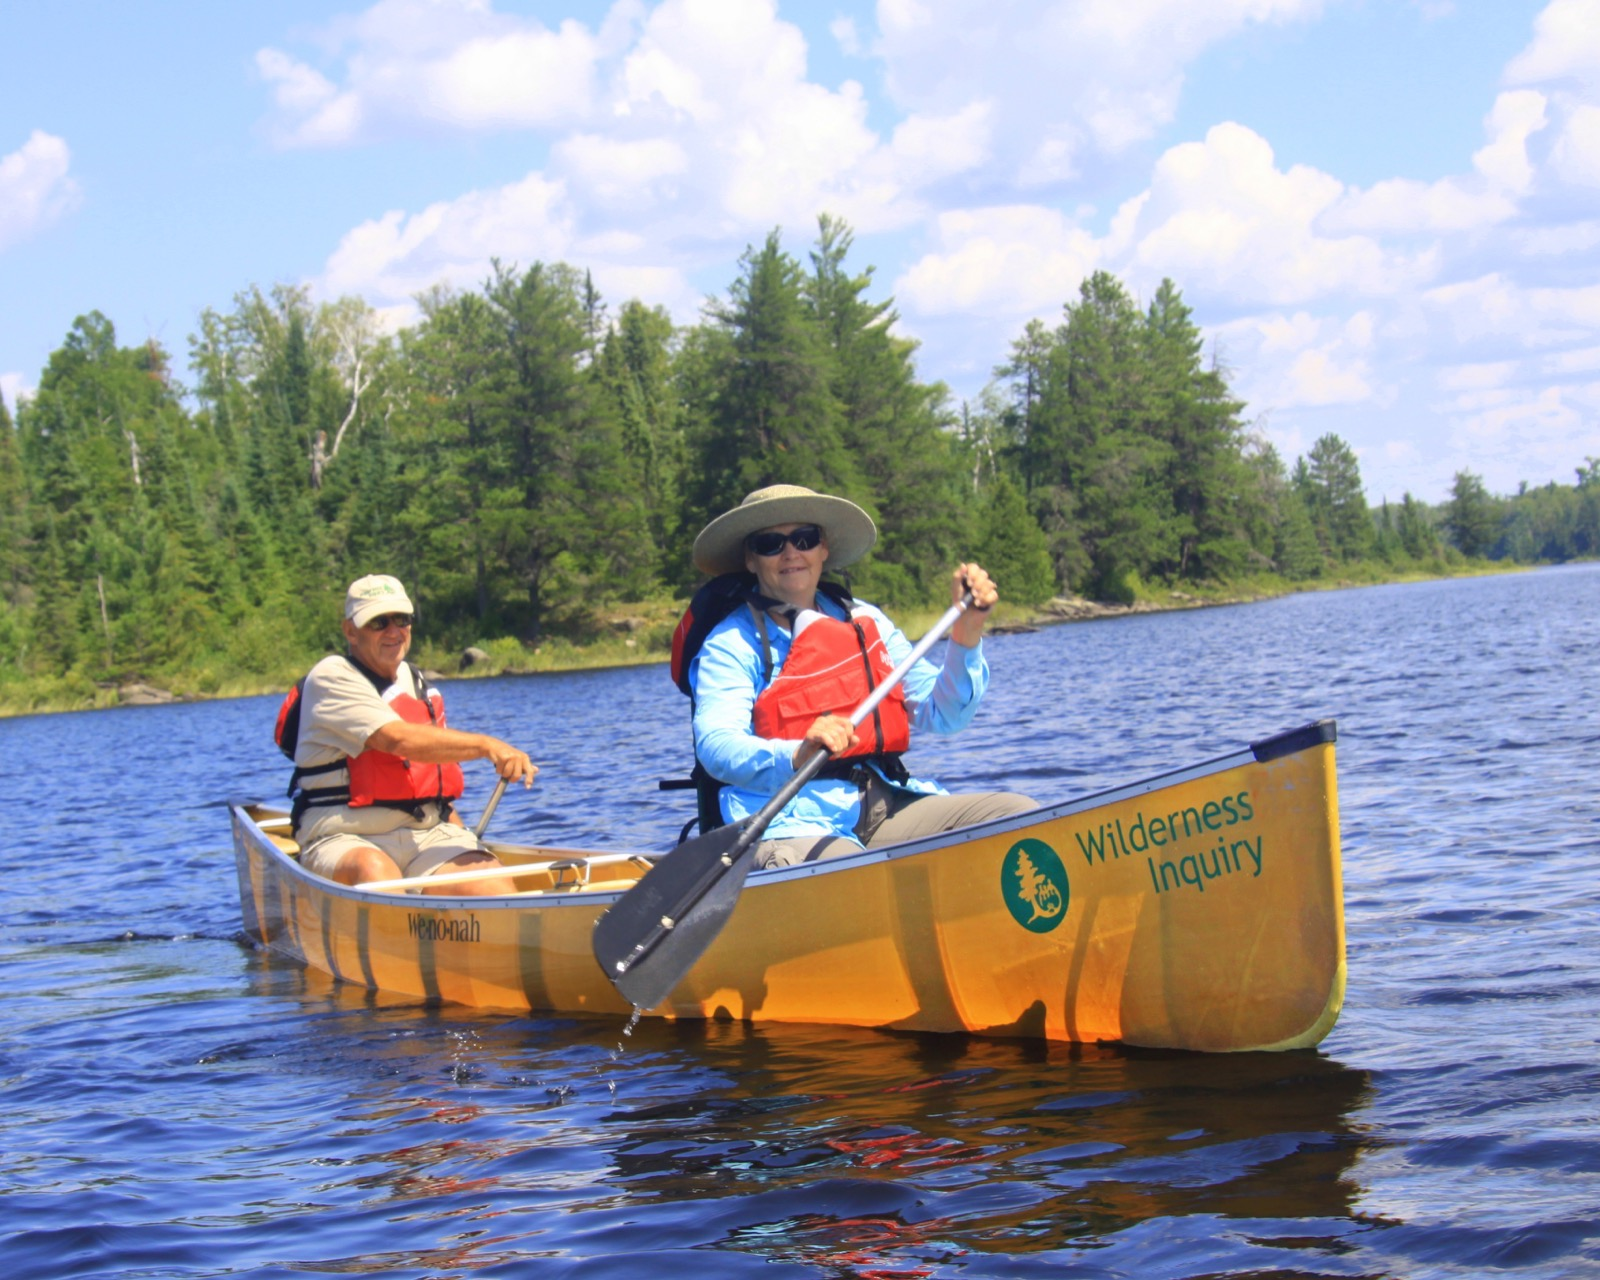 Two people paddle a kevlar canoe on lake near Ely, MN.